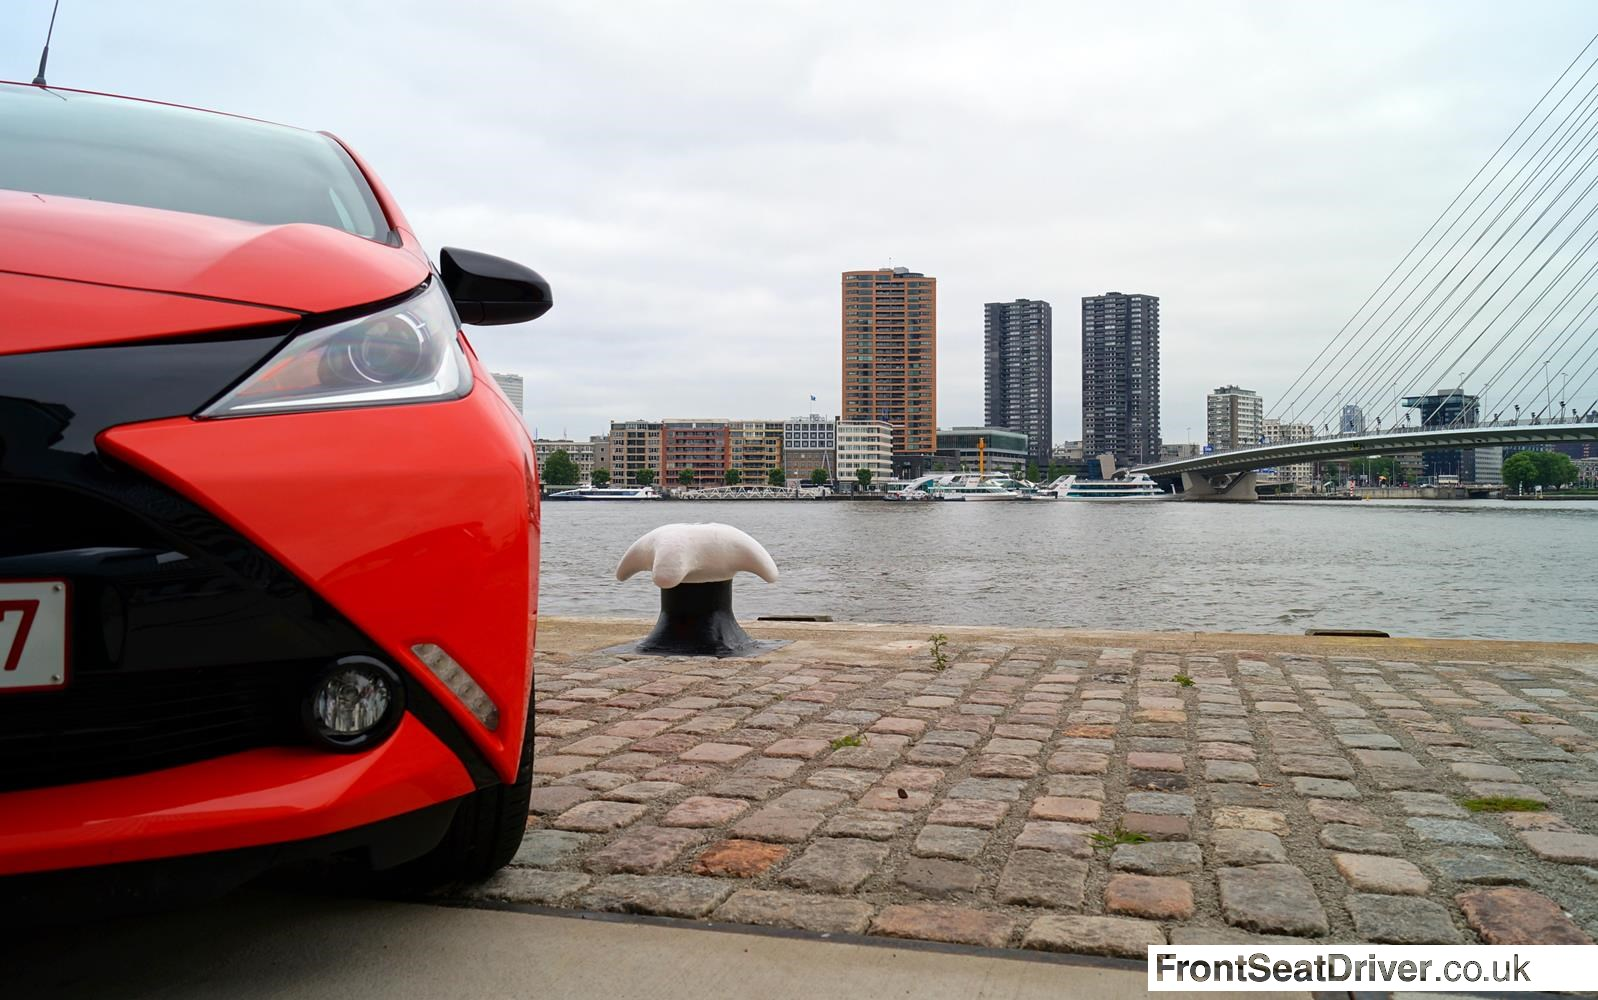 Toyota Aygo 2014 Headlight Detail Phil Huff FrontSeatDriver.co.uk